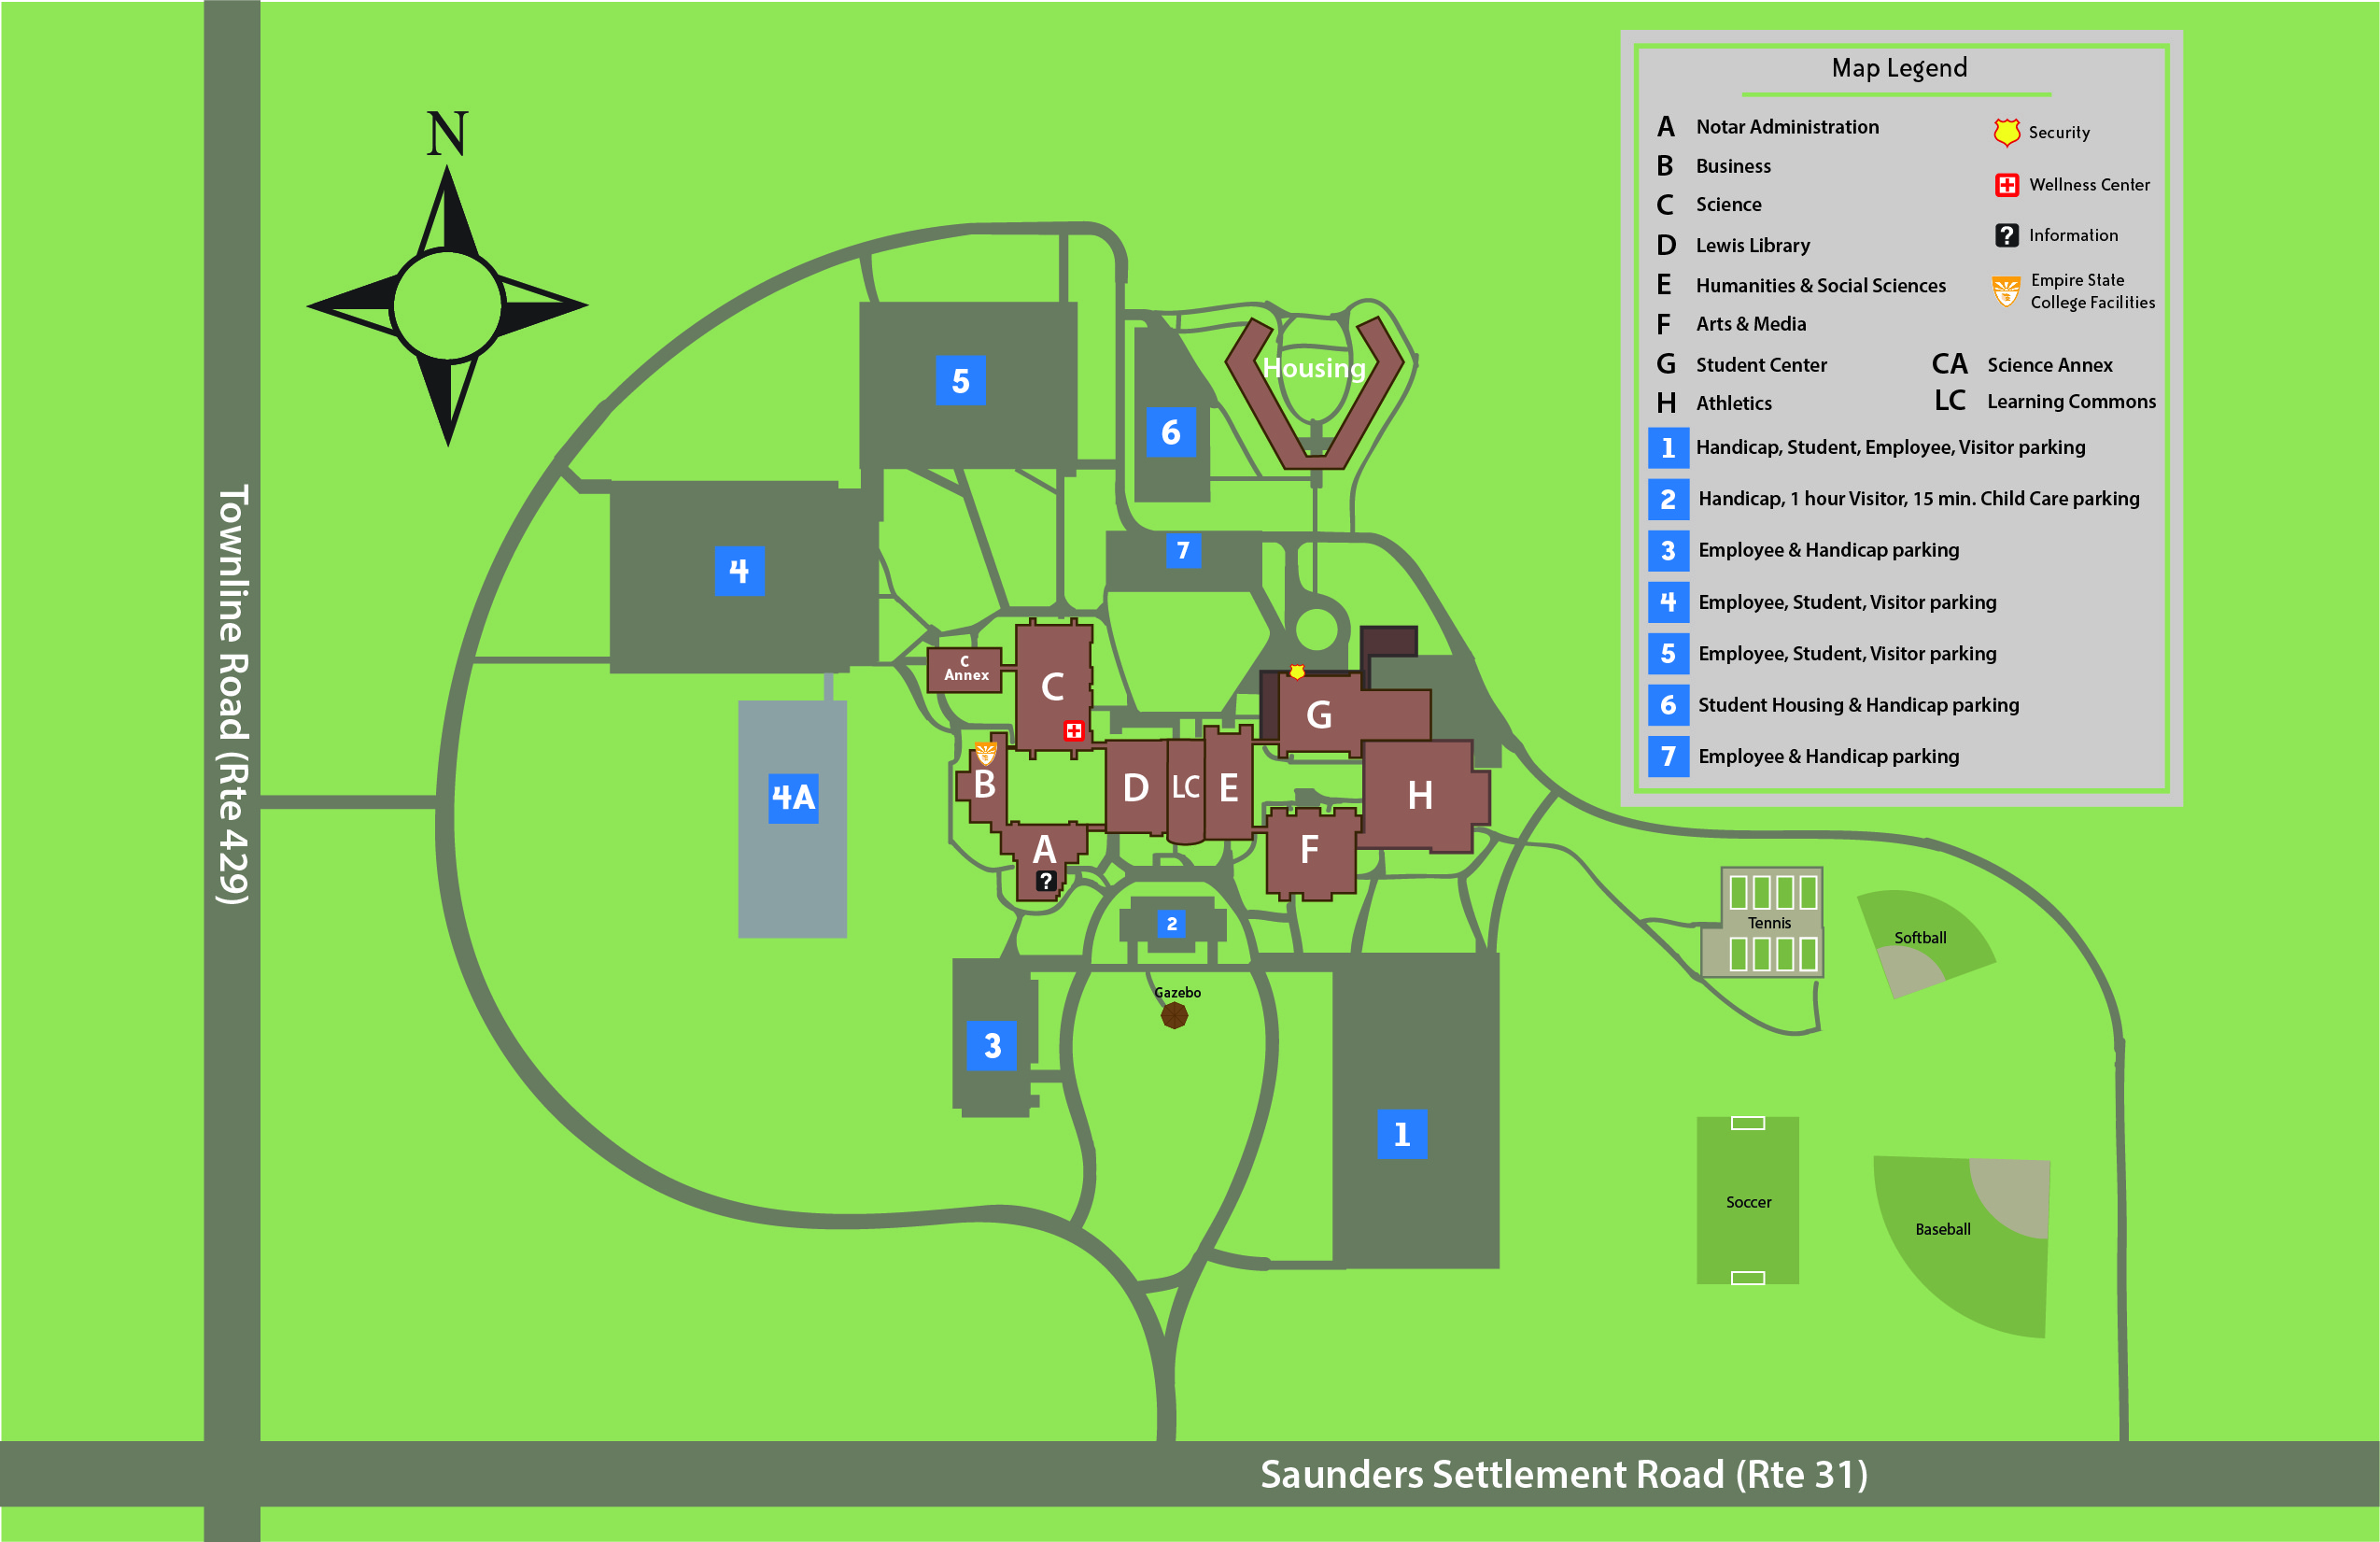 Campus building map